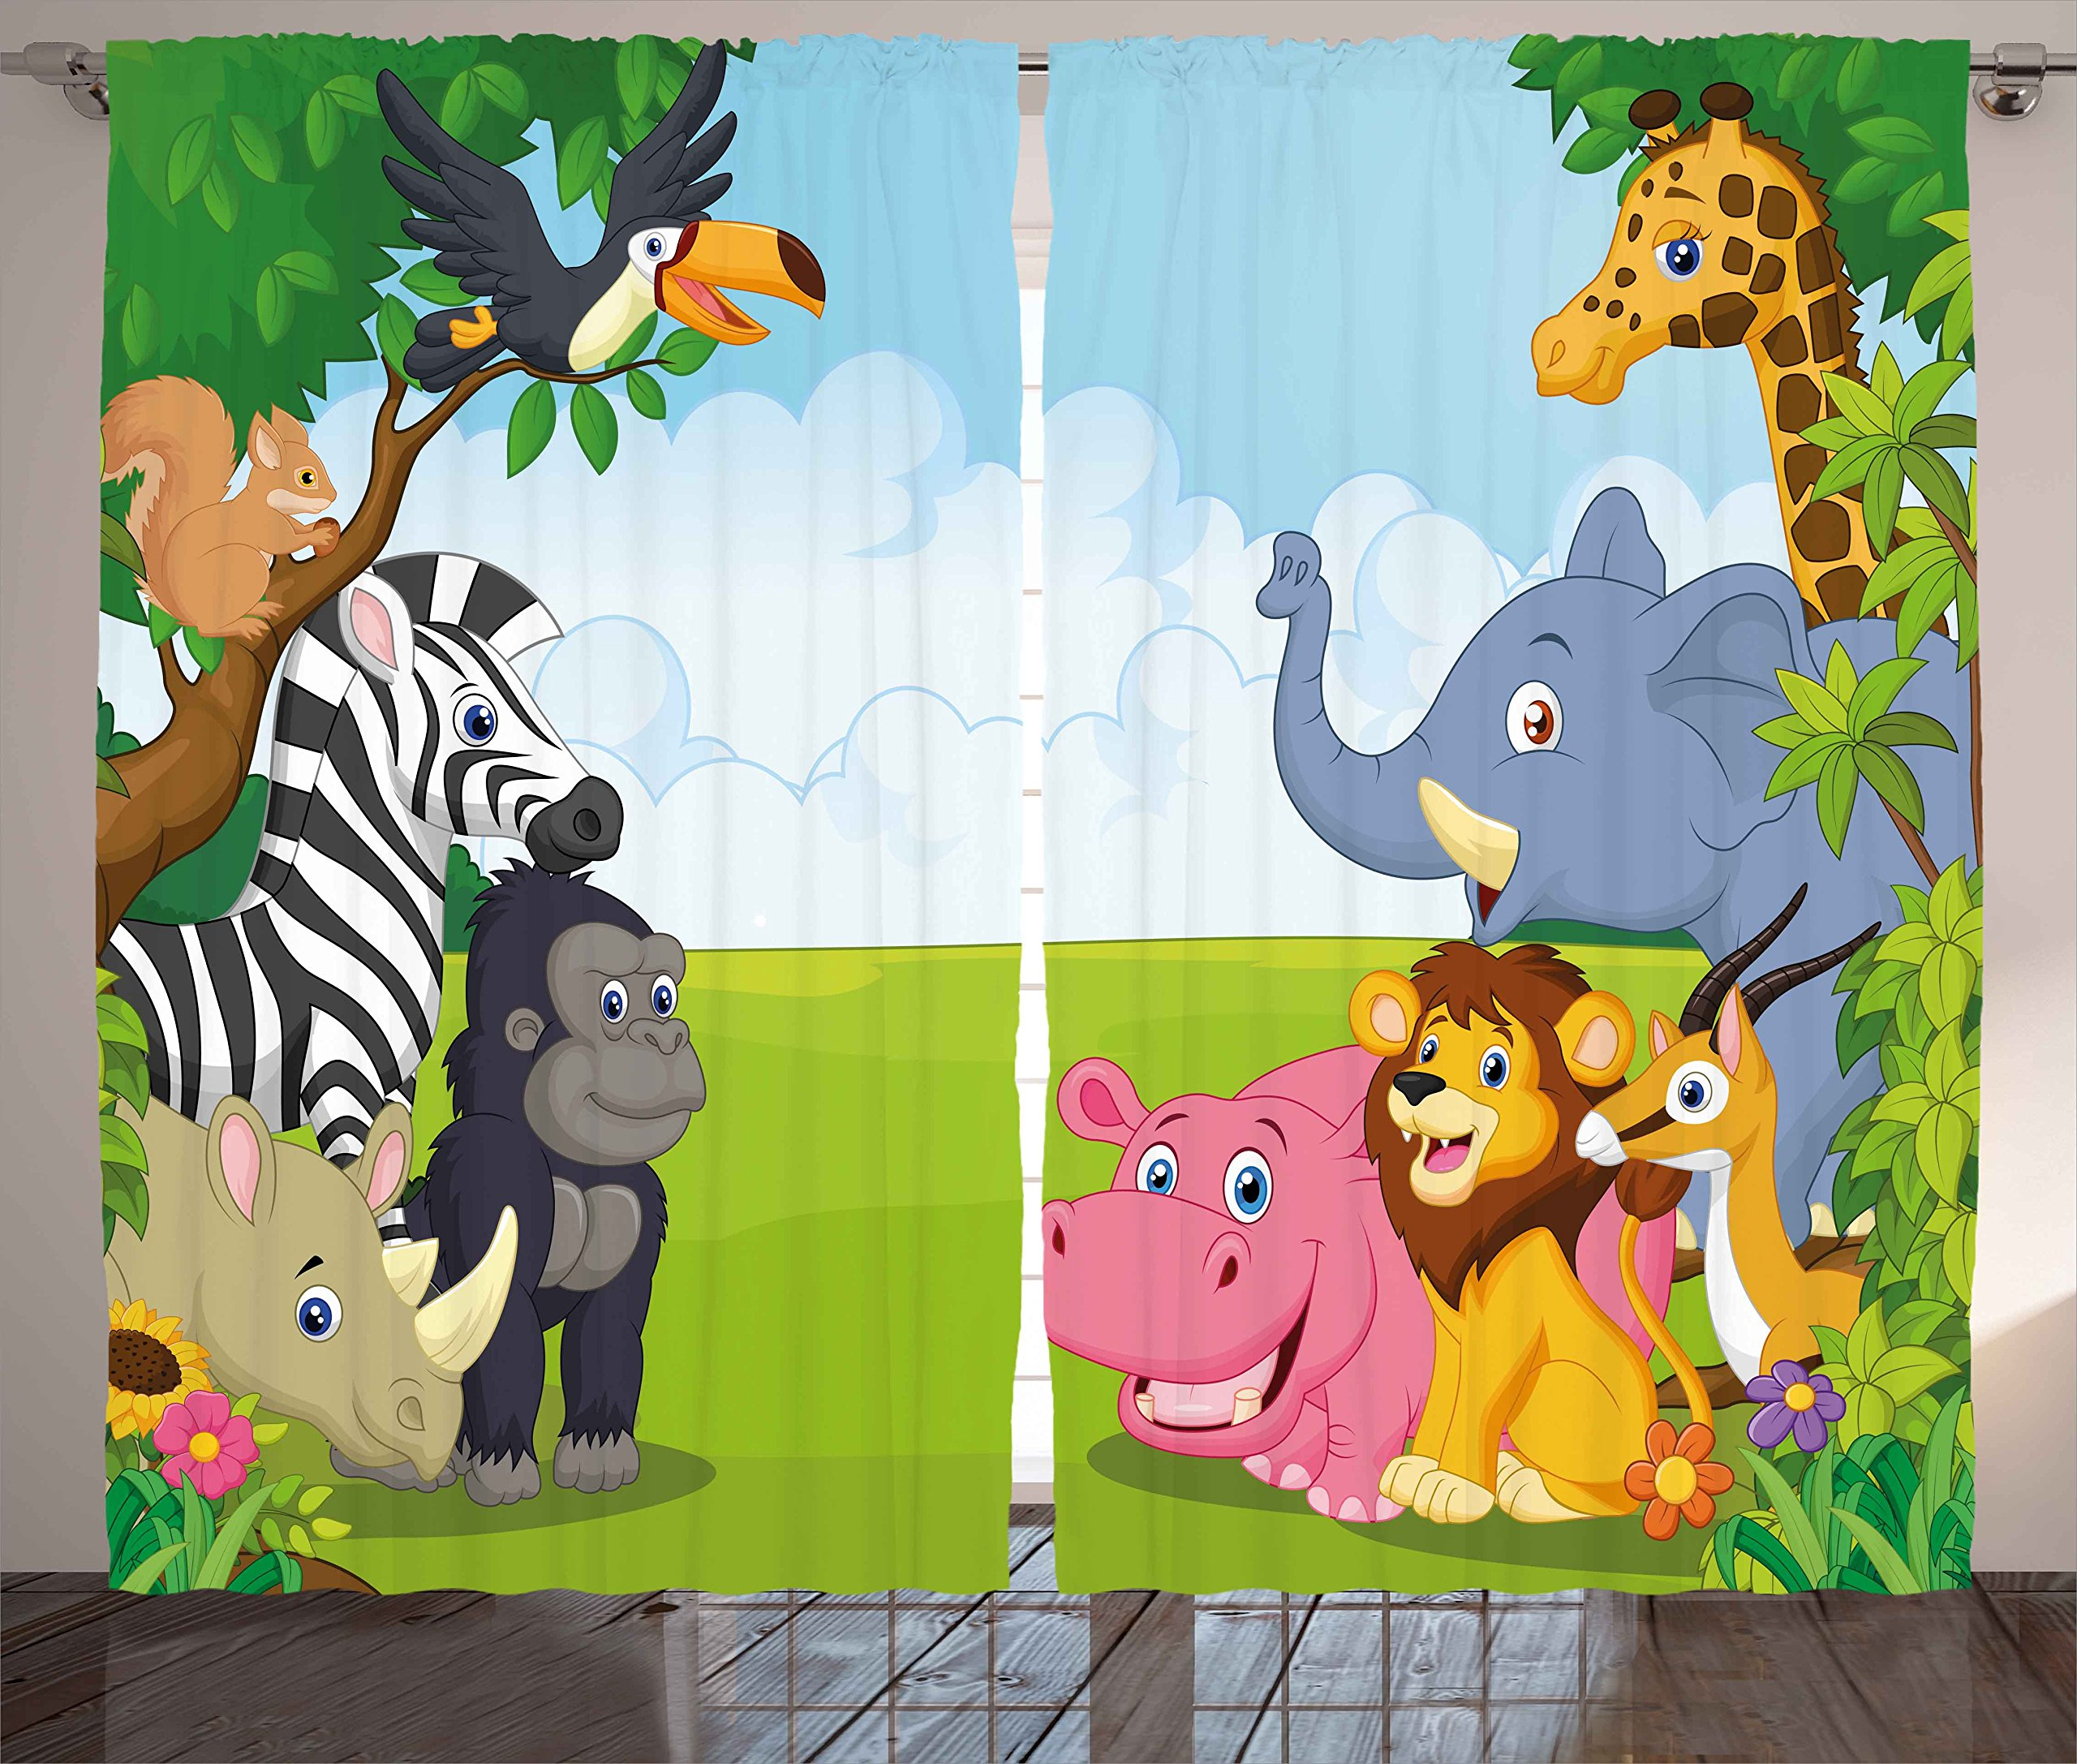 Ambesonne Kids Decor Curtains, Kids Decor Children Nursery Room Safari Themed Cartoon Animals Image Art Print, Living Room Bedroom Window Drapes 2 Panel Set, 108W X 84L Inches, Multicolor